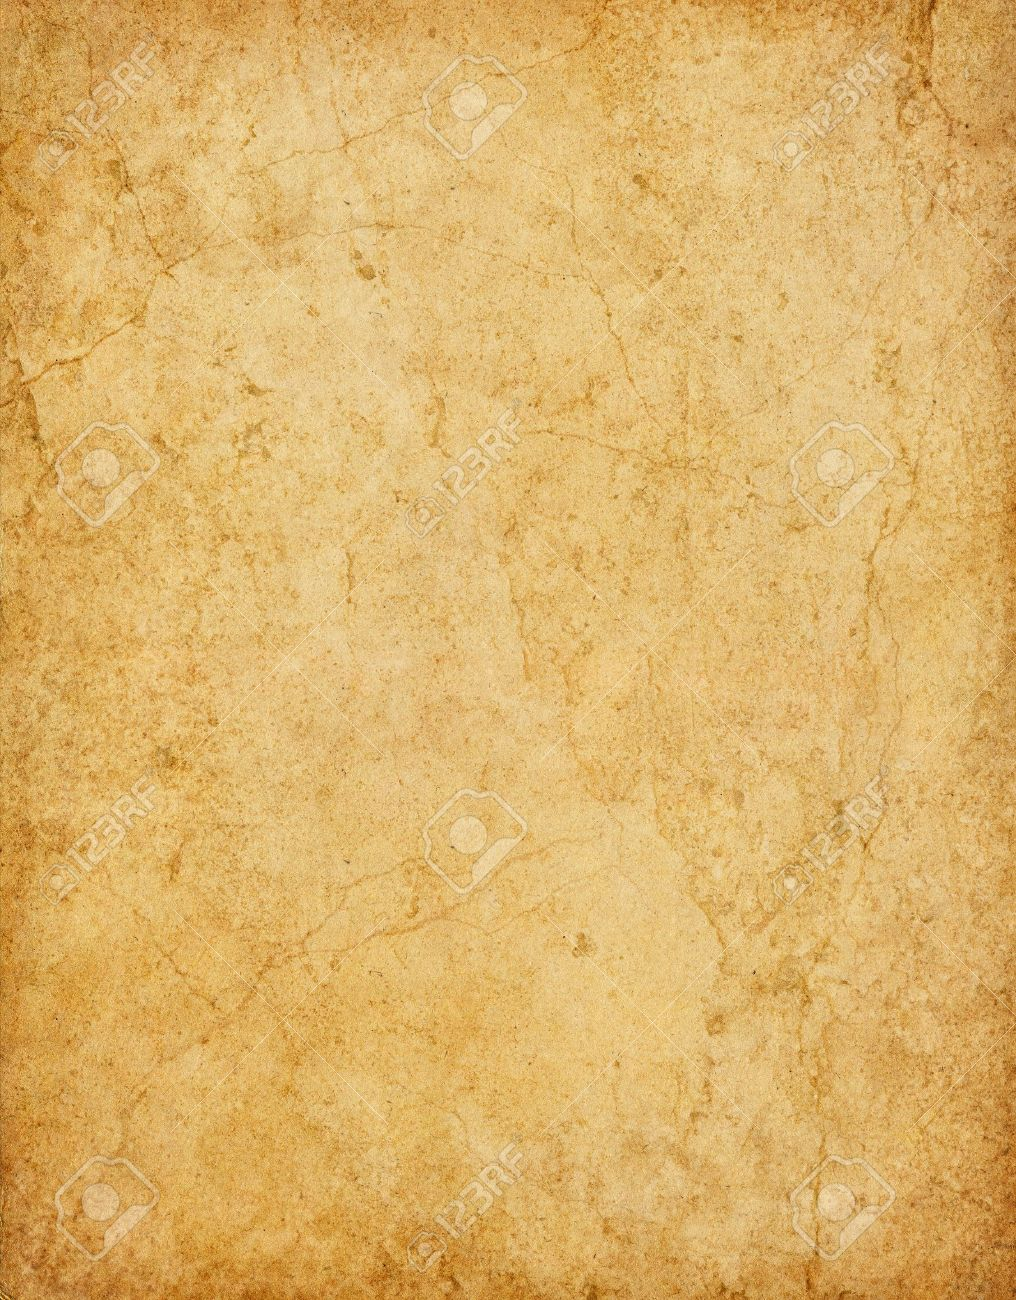 old vintage card stock paper with stains and cracks stock photo